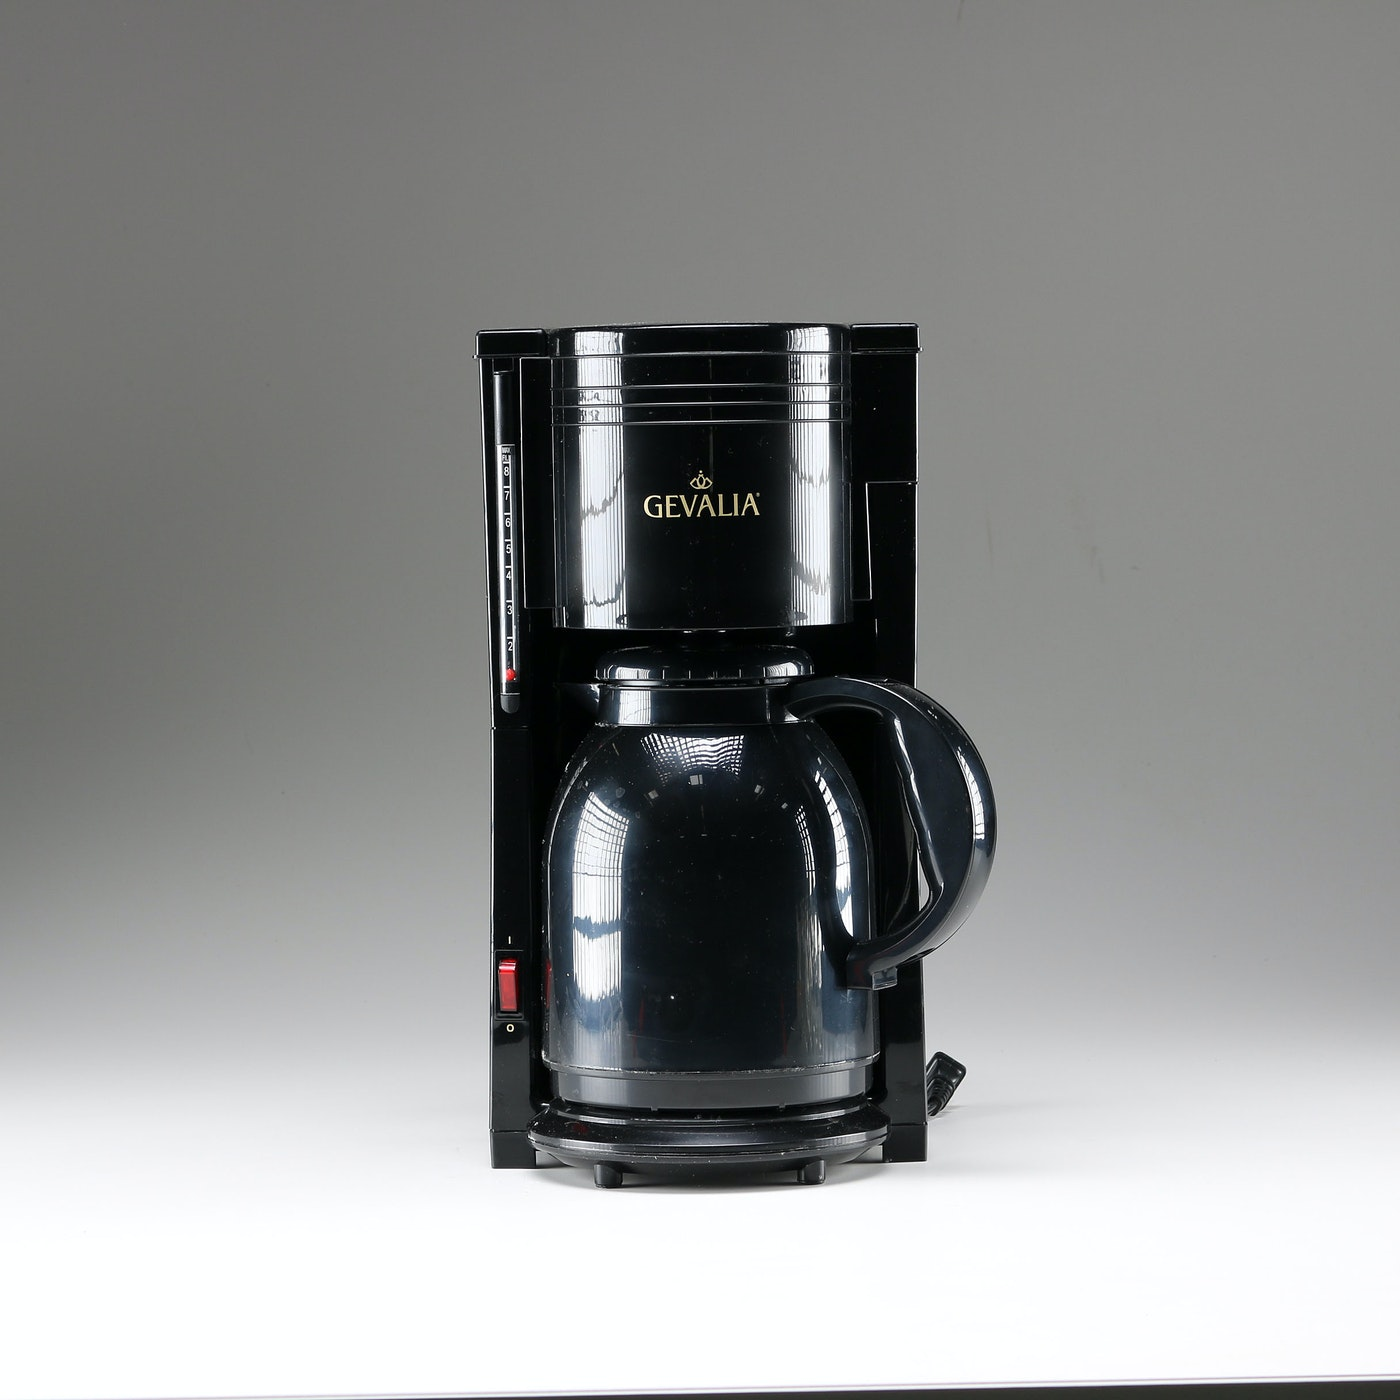 Gevalia One Cup Coffee Maker : 8-Cup Automatic Thermal Carafe Coffee Maker by Gevalia : EBTH